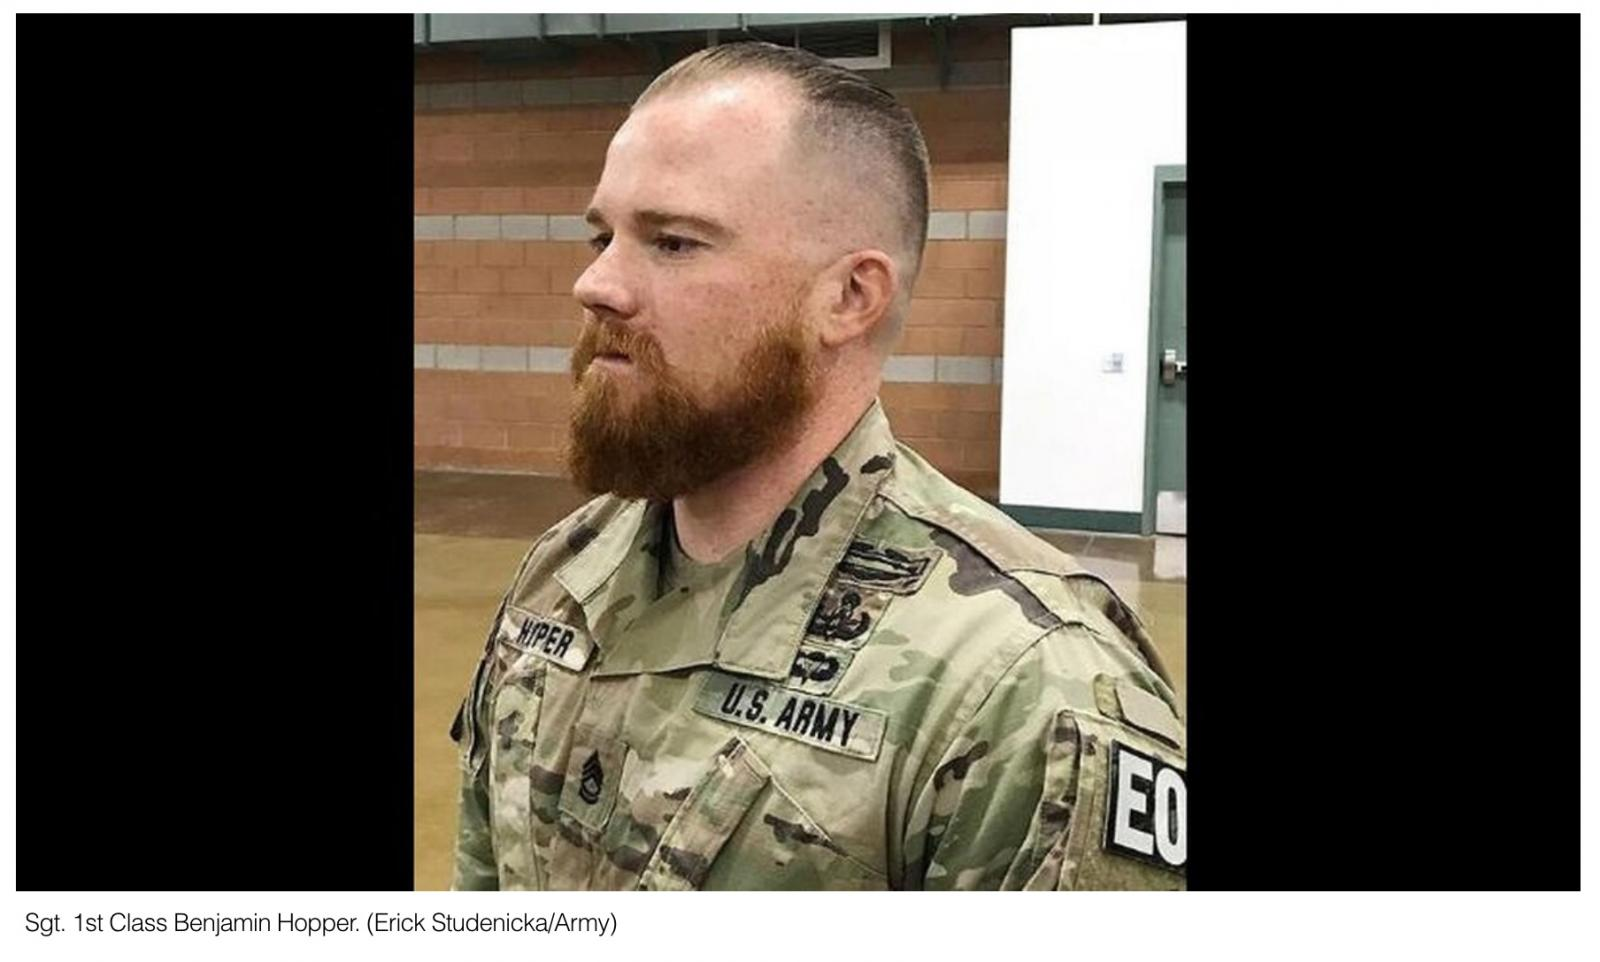 A soldiers Norse pagan faith earns beard waiver